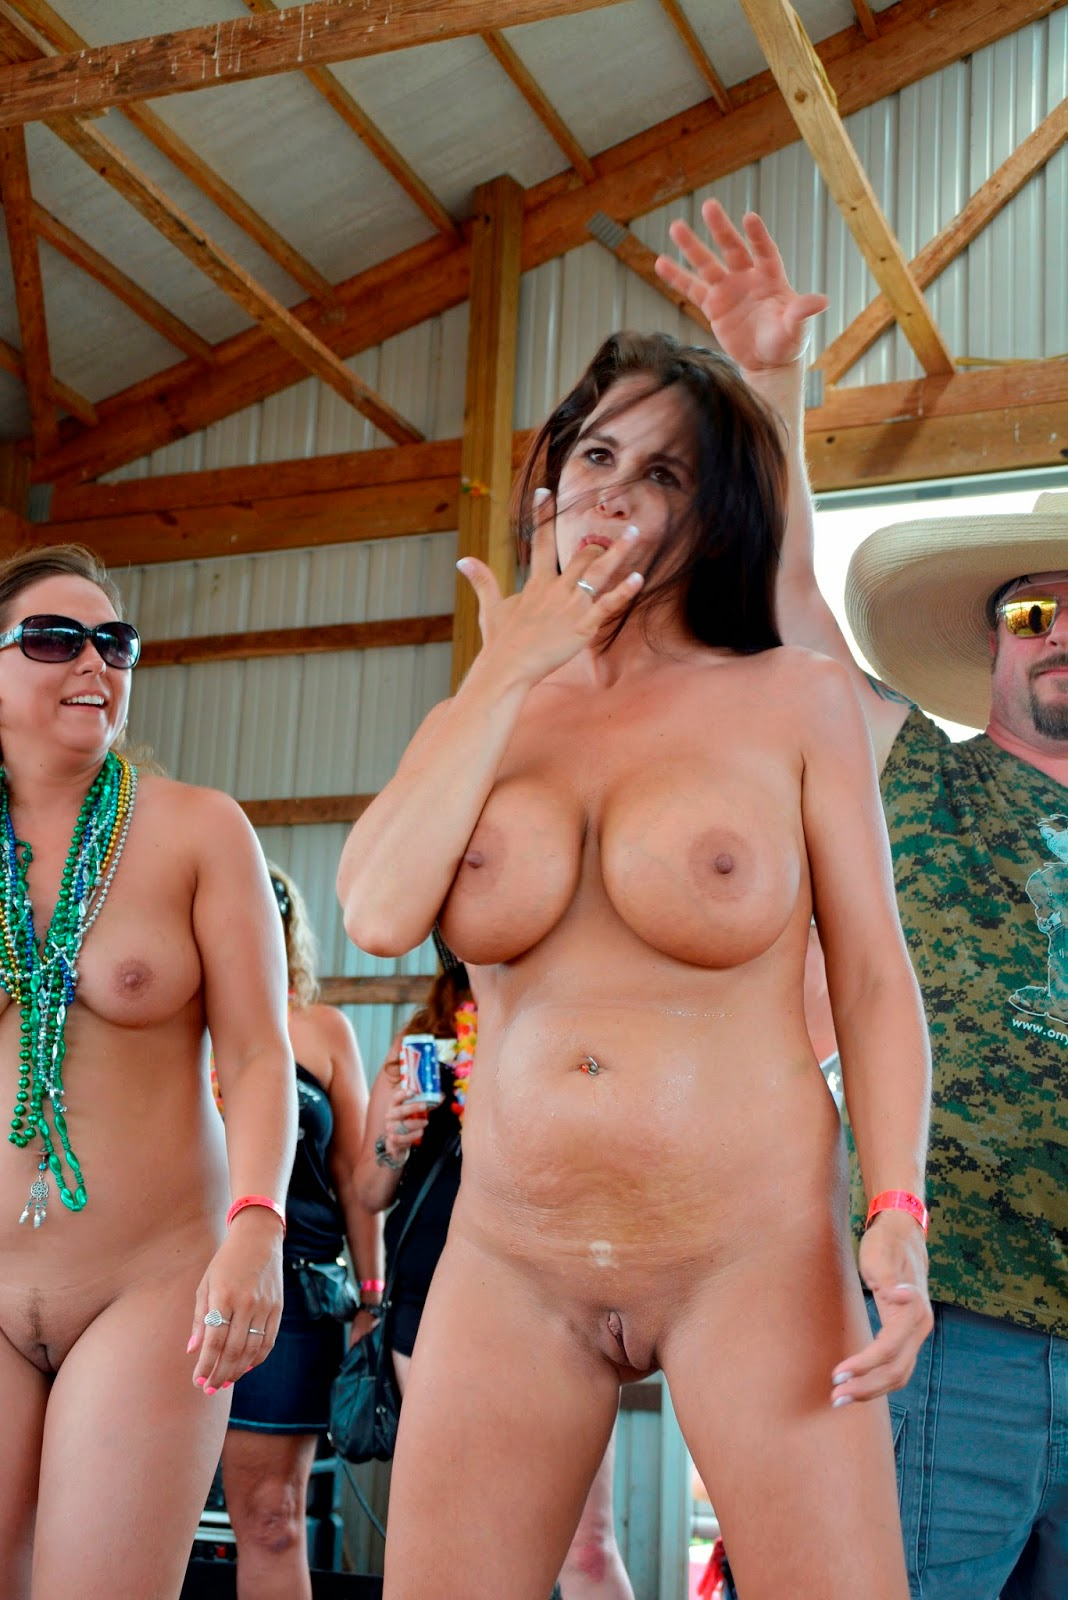 Naked Women At Sturgis